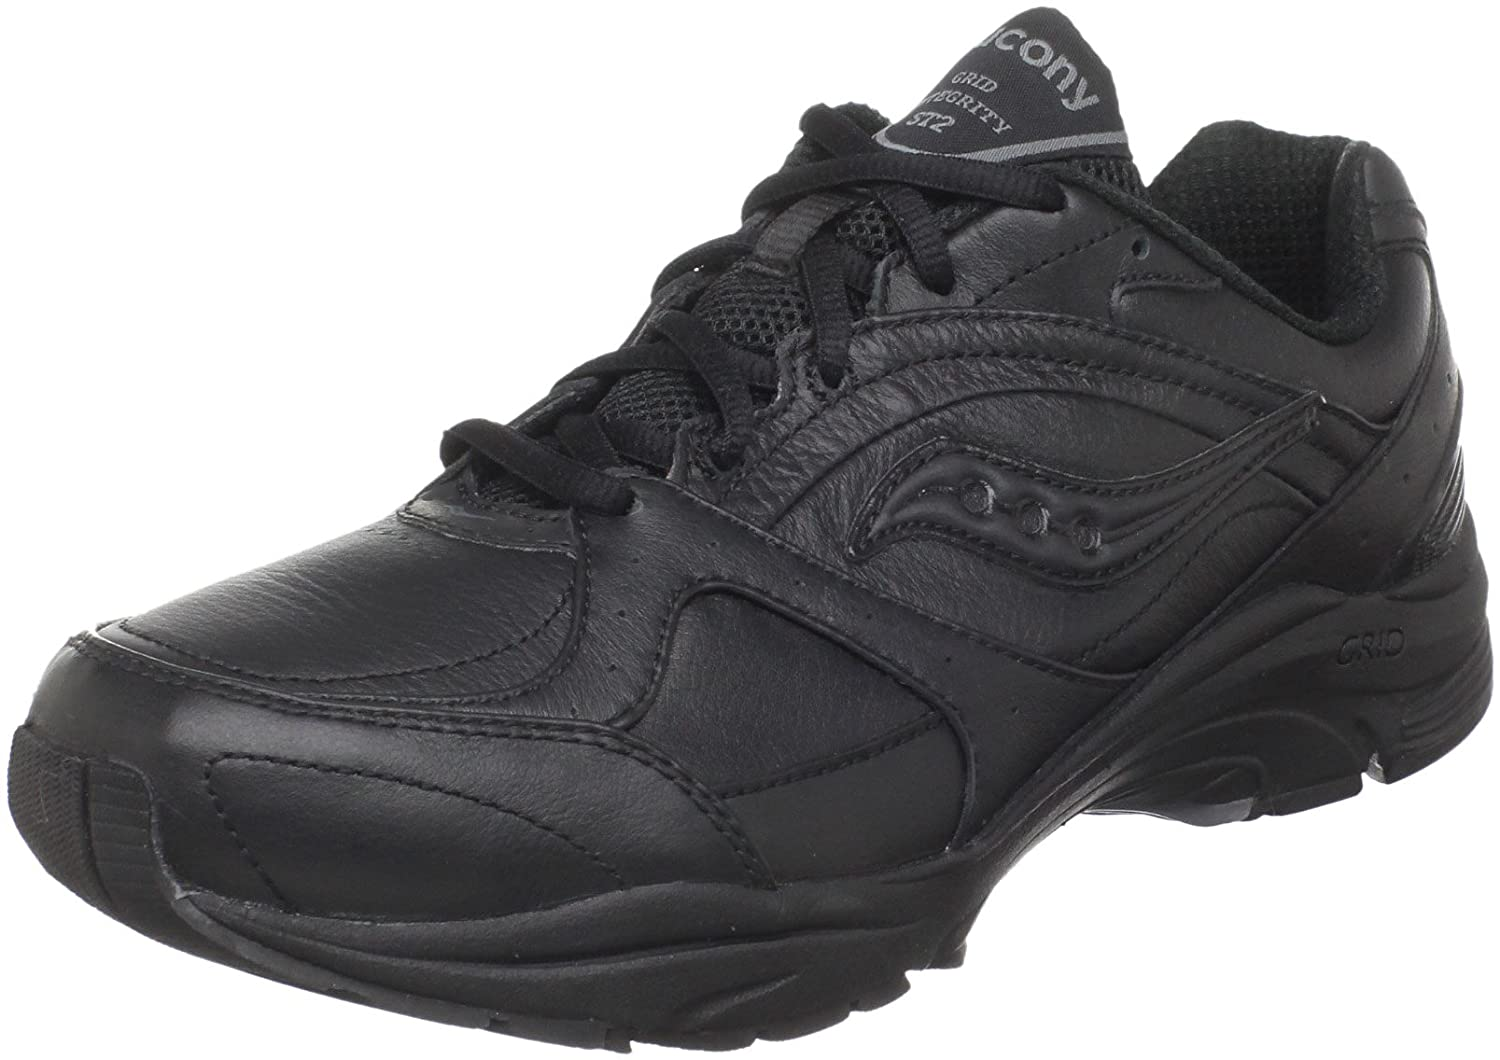 Saucony Women's ProGrid Integrity ST2 Walking Shoe B00413QTNY 7 2A US|Black/Grey